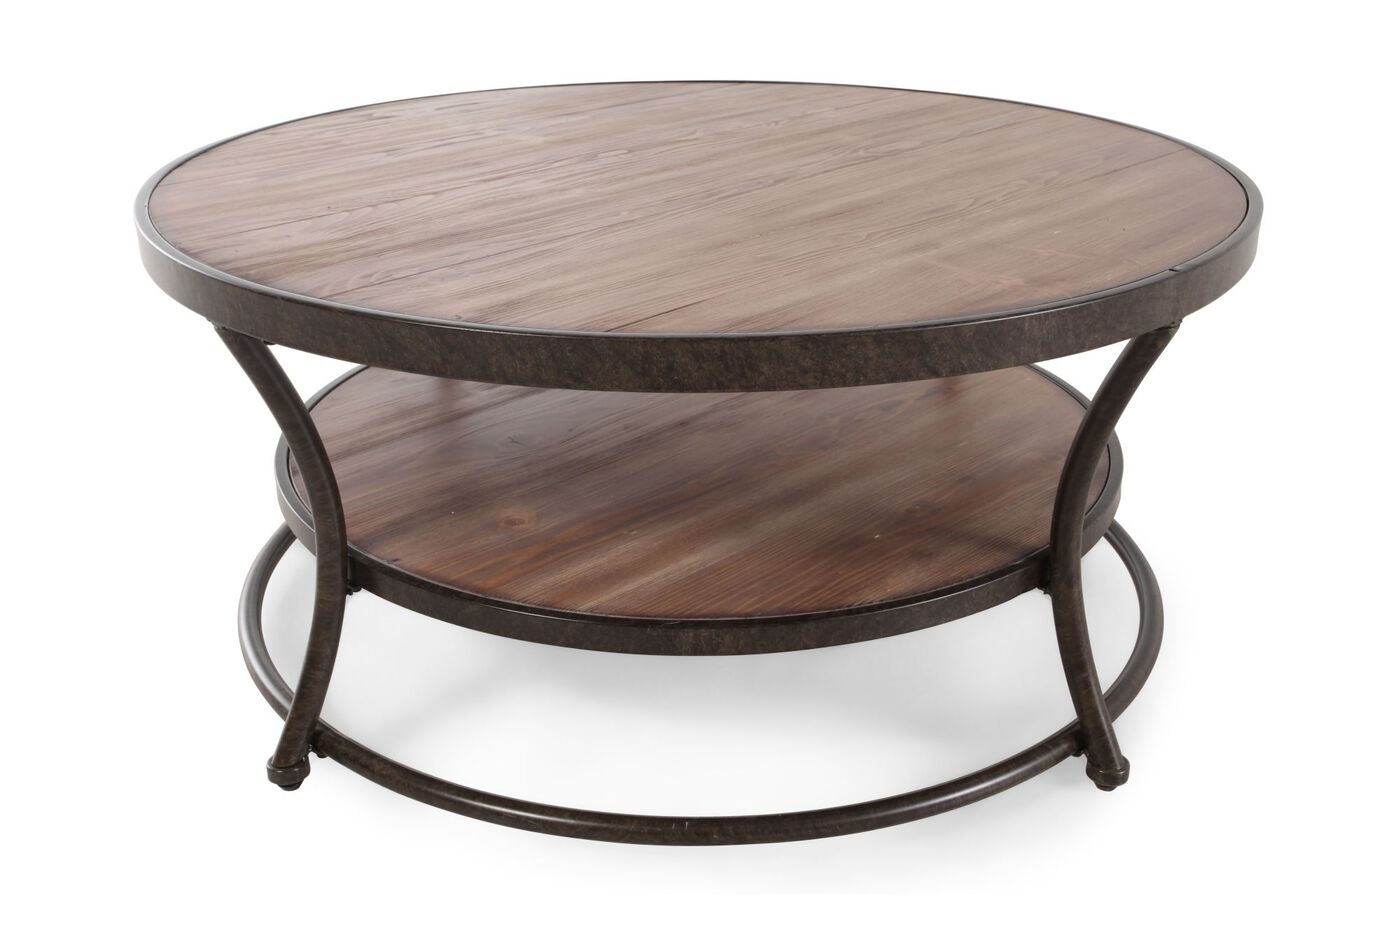 Ashley nartina round cocktail table mathis brothers Round cocktail table